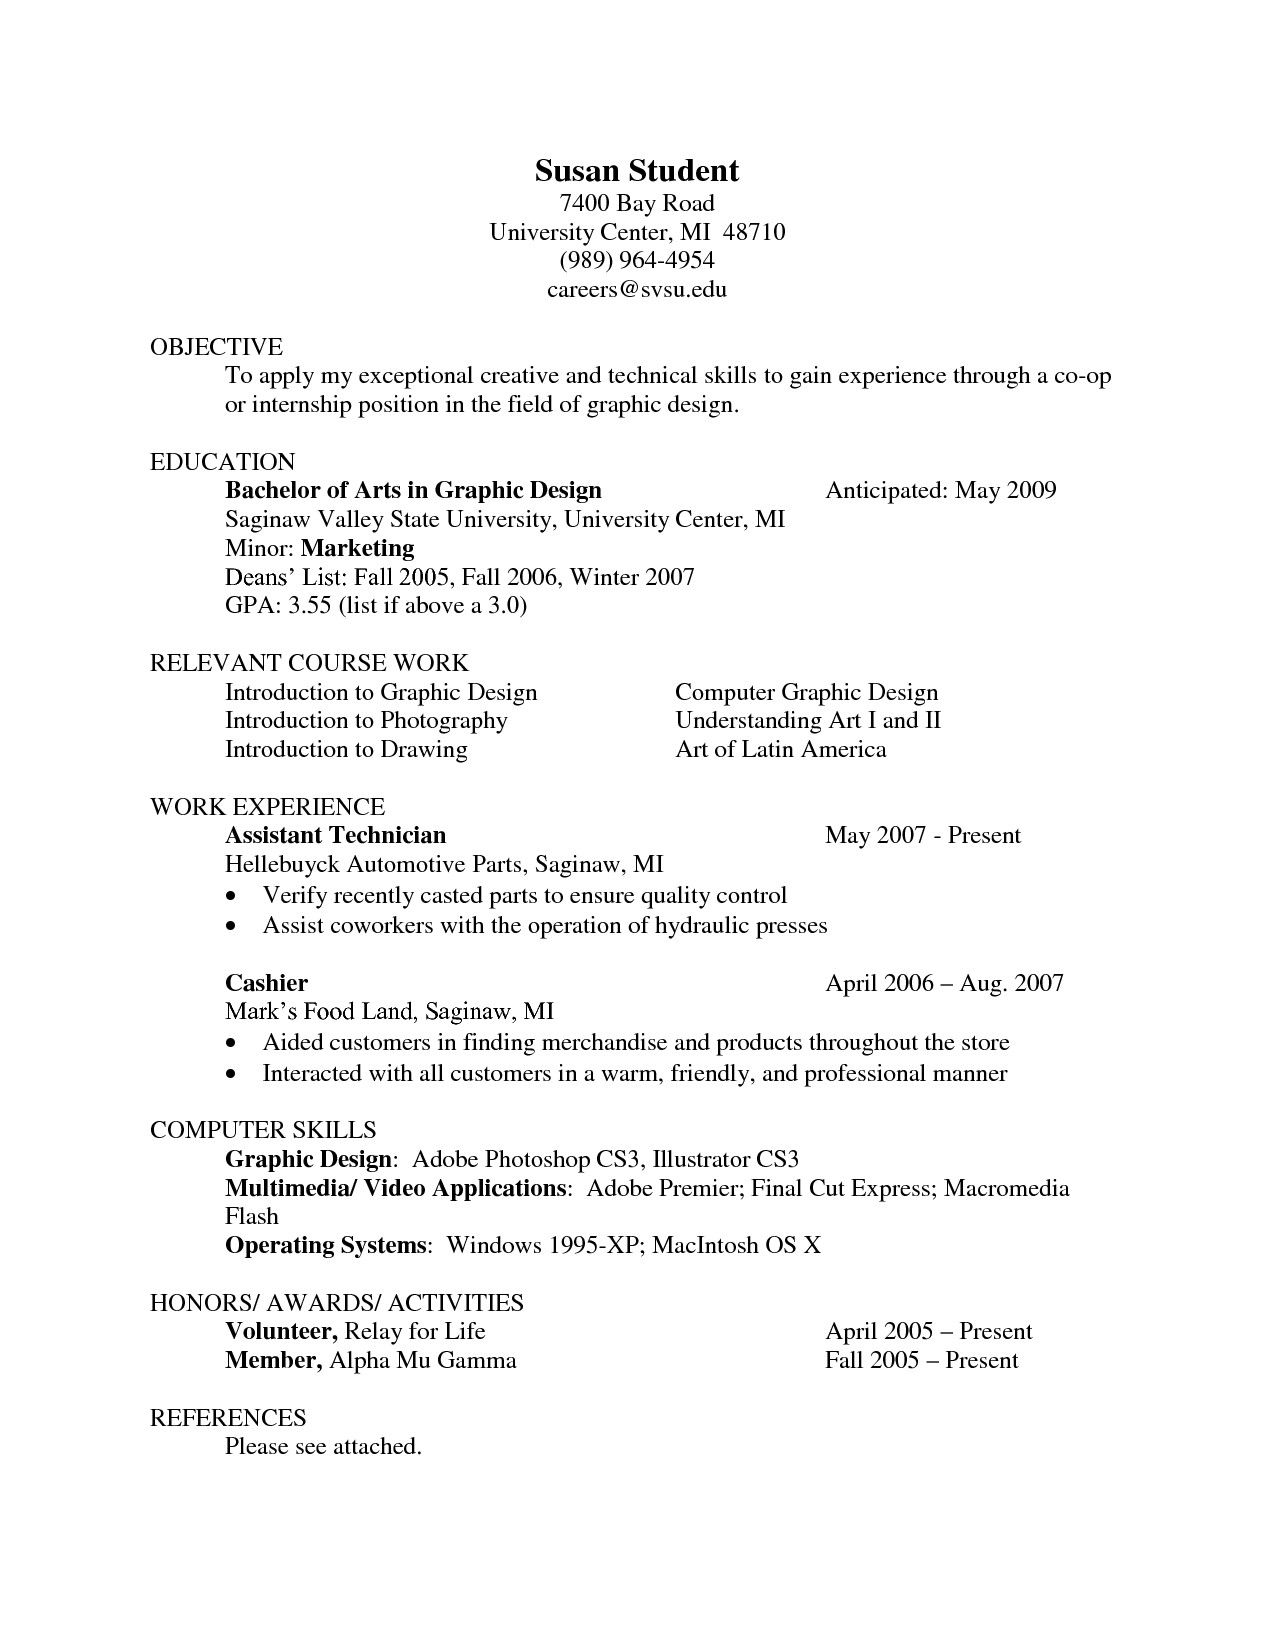 List Of Computer Skills For Resume Amusing Resume Examples References  Pinterest  Resume Examples